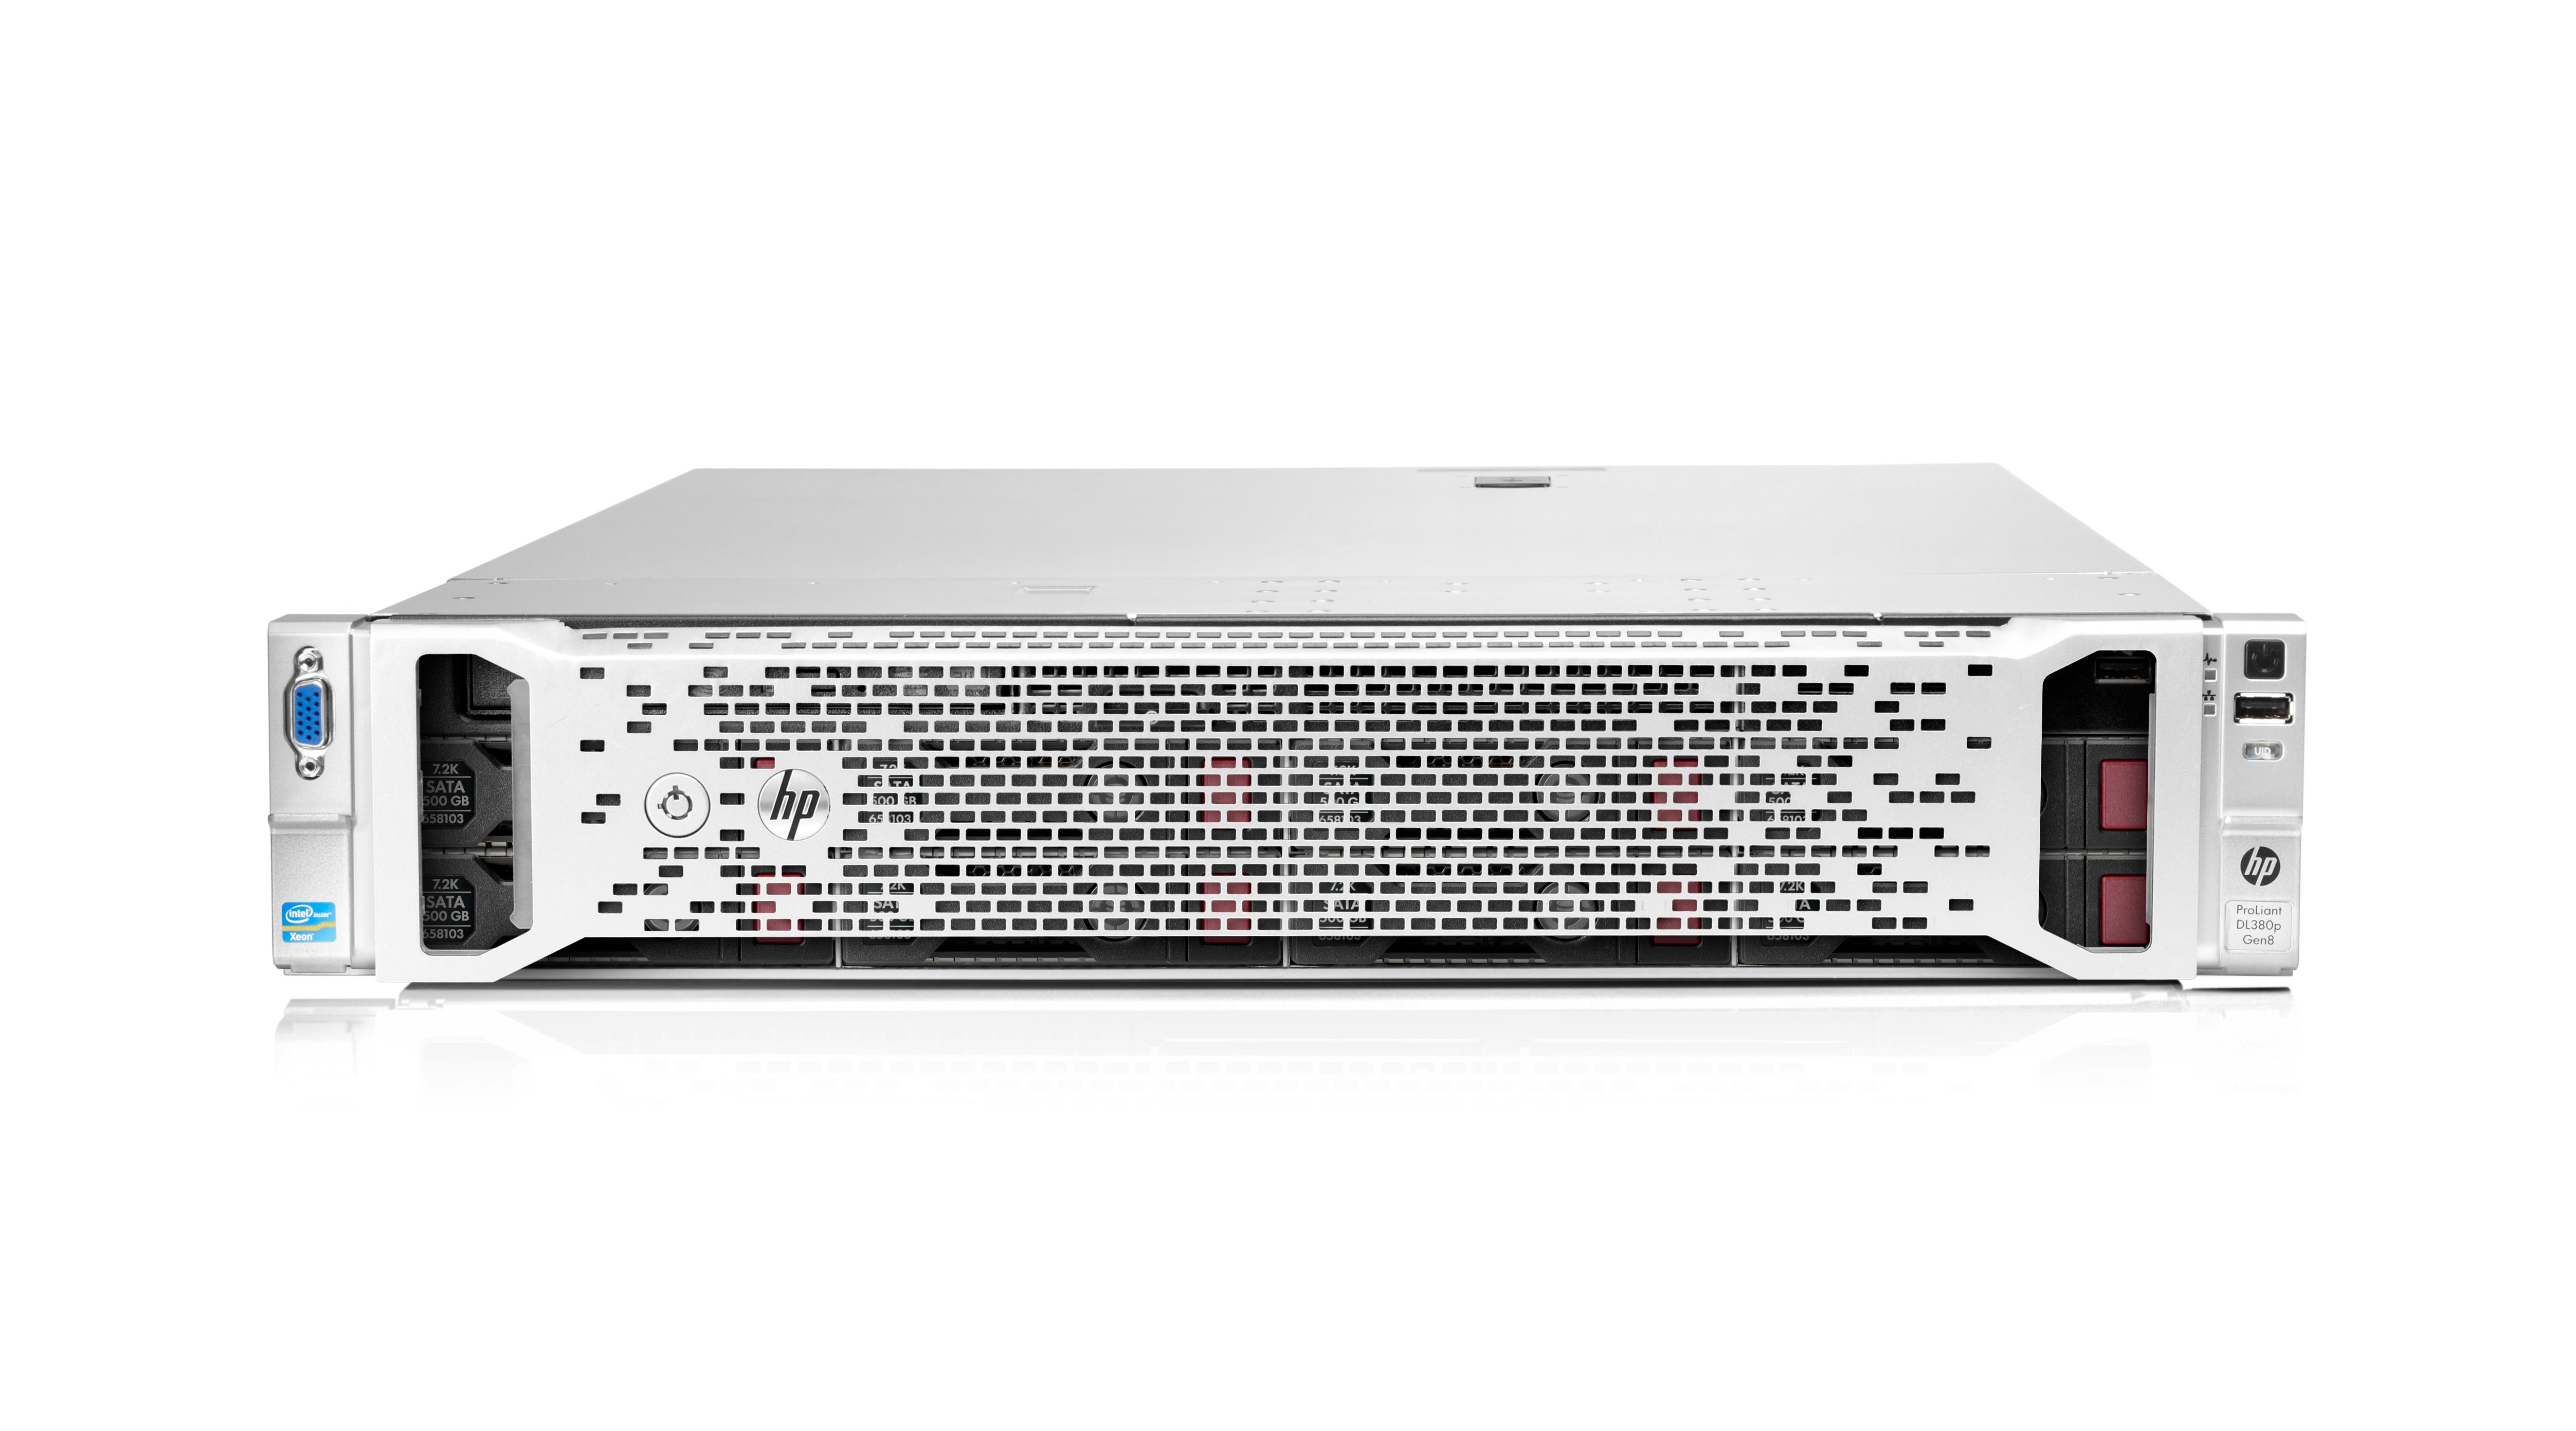 HP ProLiant DL380p Gen8 Server Xeon E5 (2620) 2GHz (1P) 16GB-R (noHDD) P420i SFF with 460W Power Supply